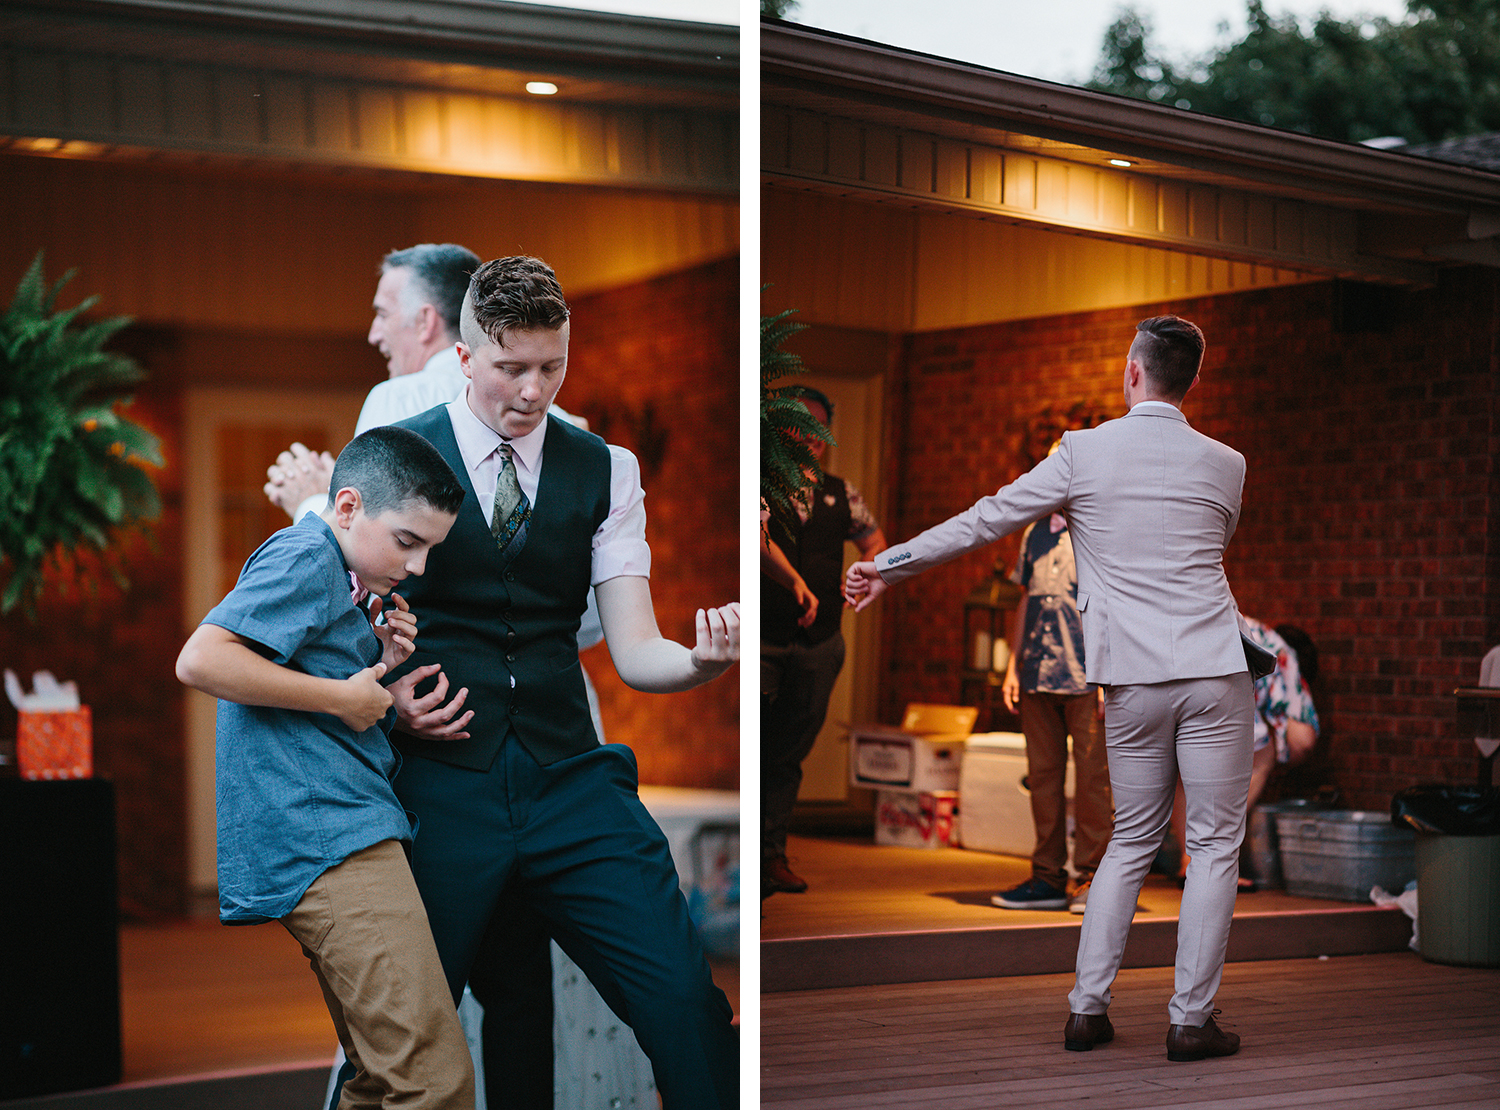 28-Backyard-toronto-film-photographer-ryanne-hollies-photography-diy-string-lights-and-lanterns-reception-documentary-fun-candid-dancing-guests-groom-flossing.jpg